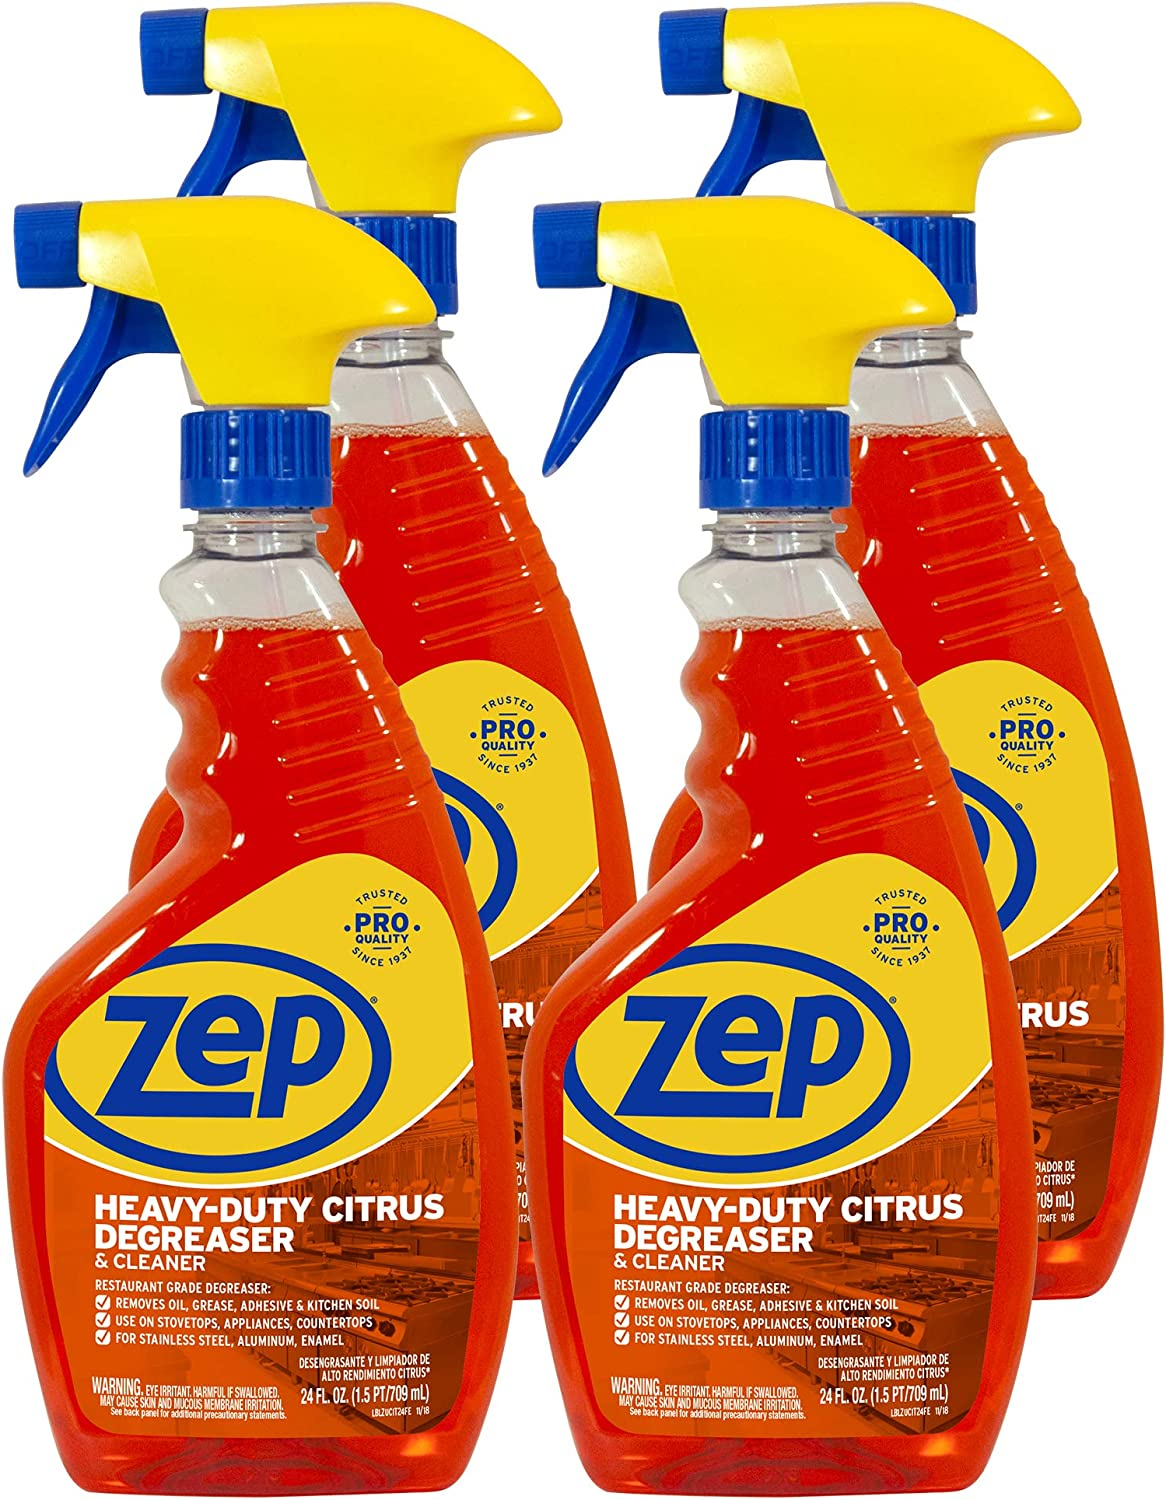 Zep Heavy-Duty Citrus Degreaser and Cleaner 24 Ounce (Case of 4)